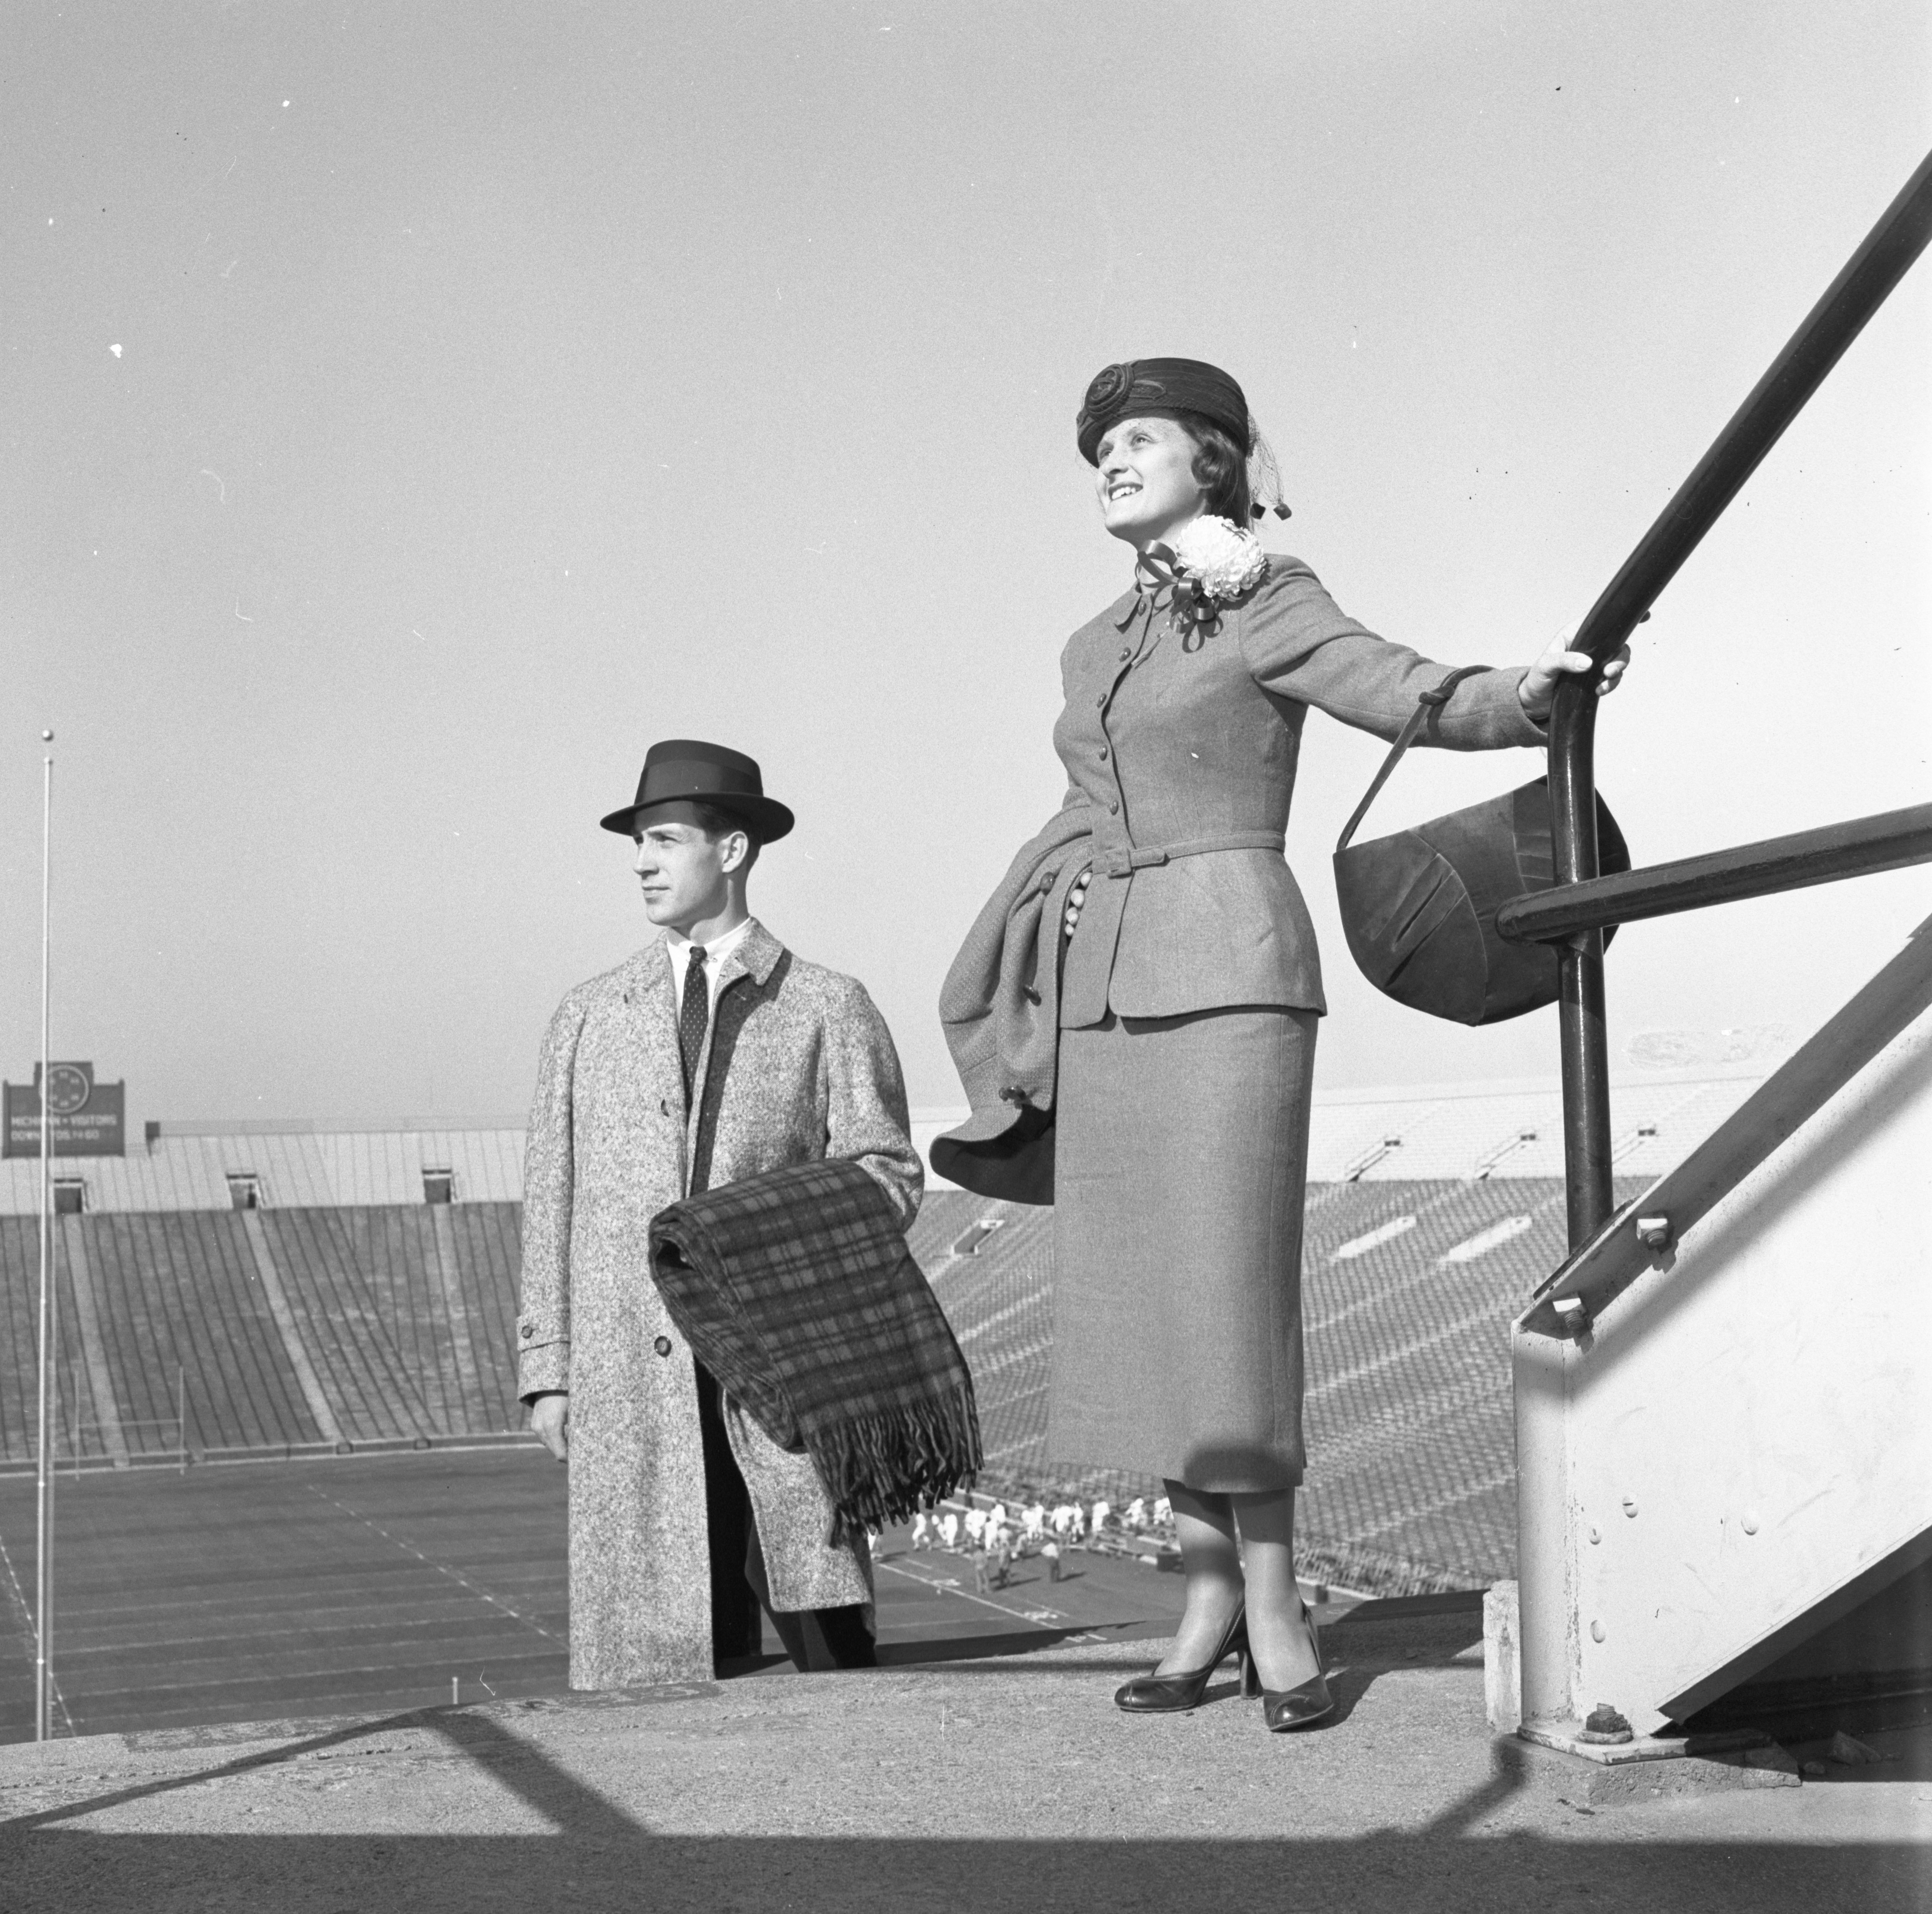 Robert Lemmon & Edith Dale Model Fall Fashions In Michigan Stadium, October 1956 image